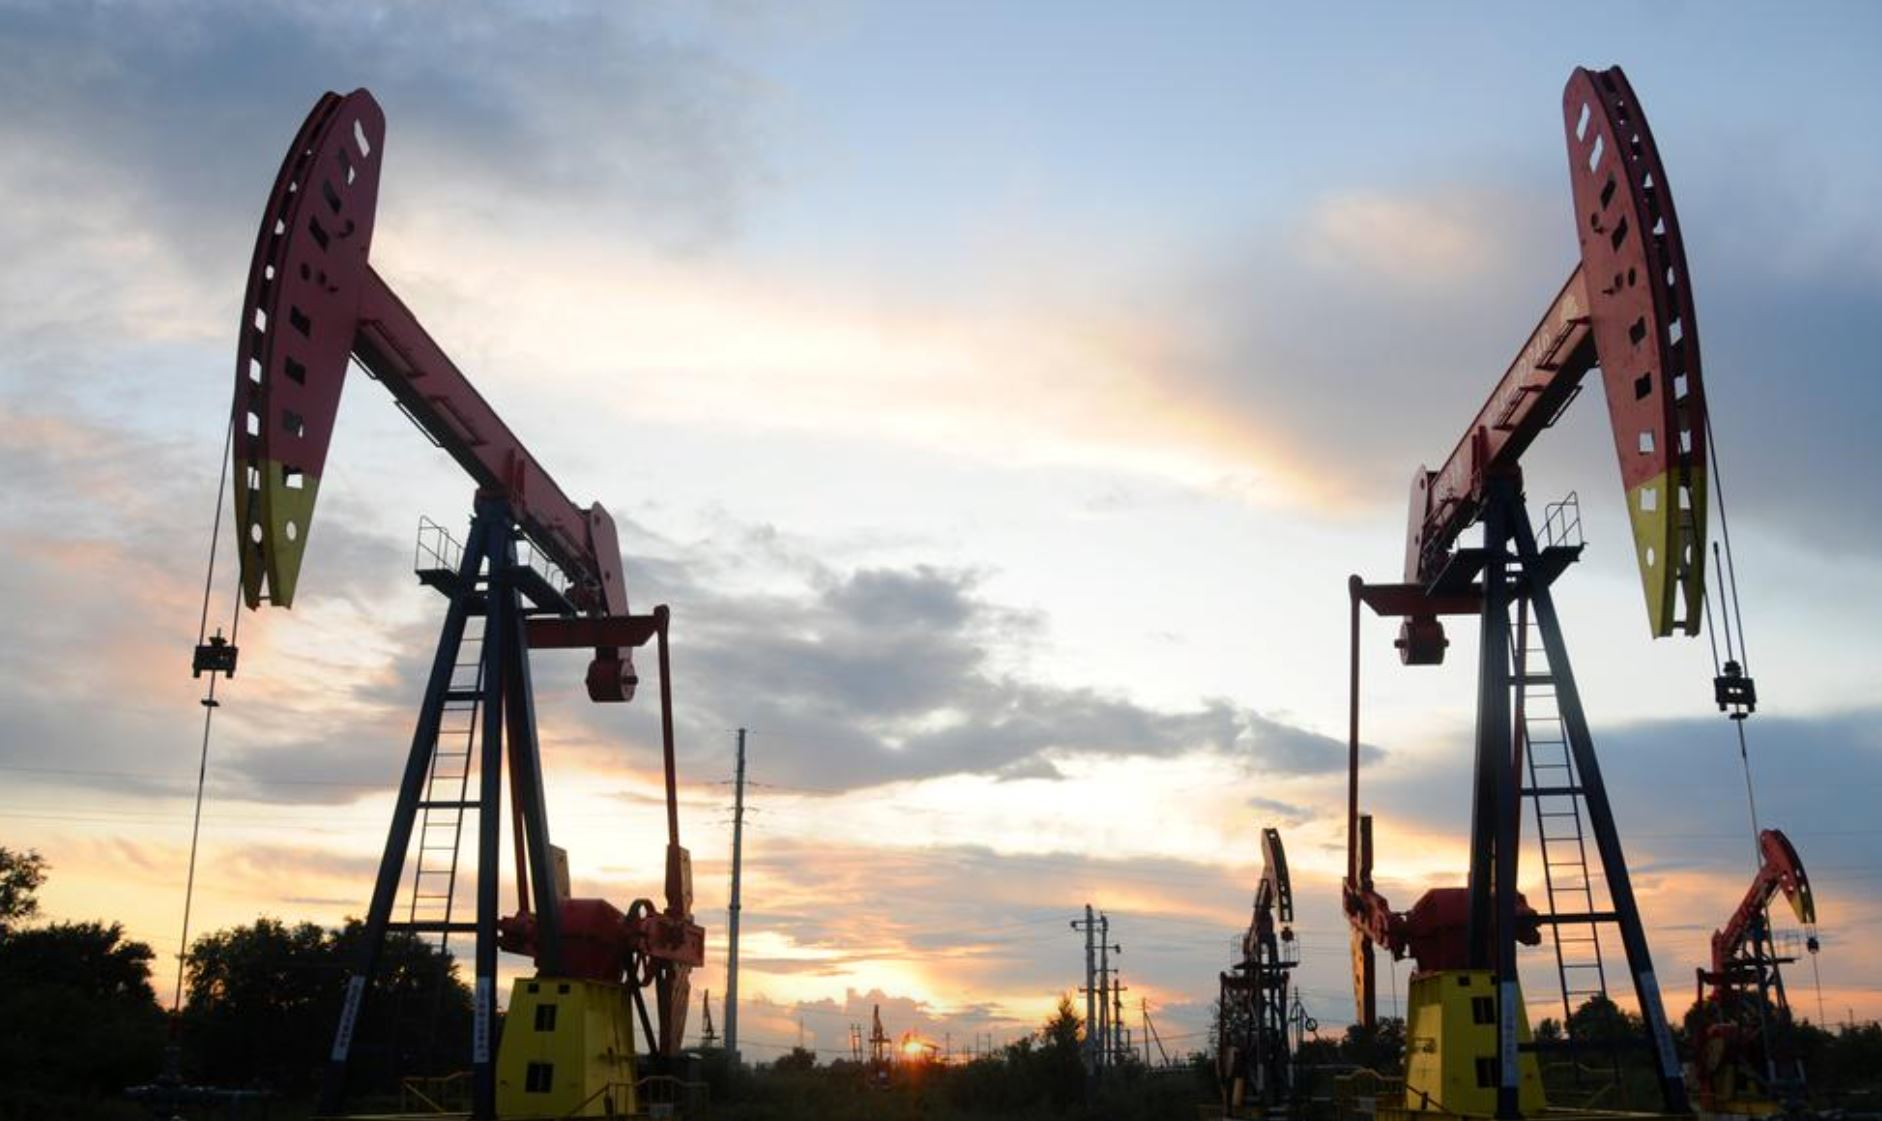 Oil prices steady as third storm in month takes aims at US